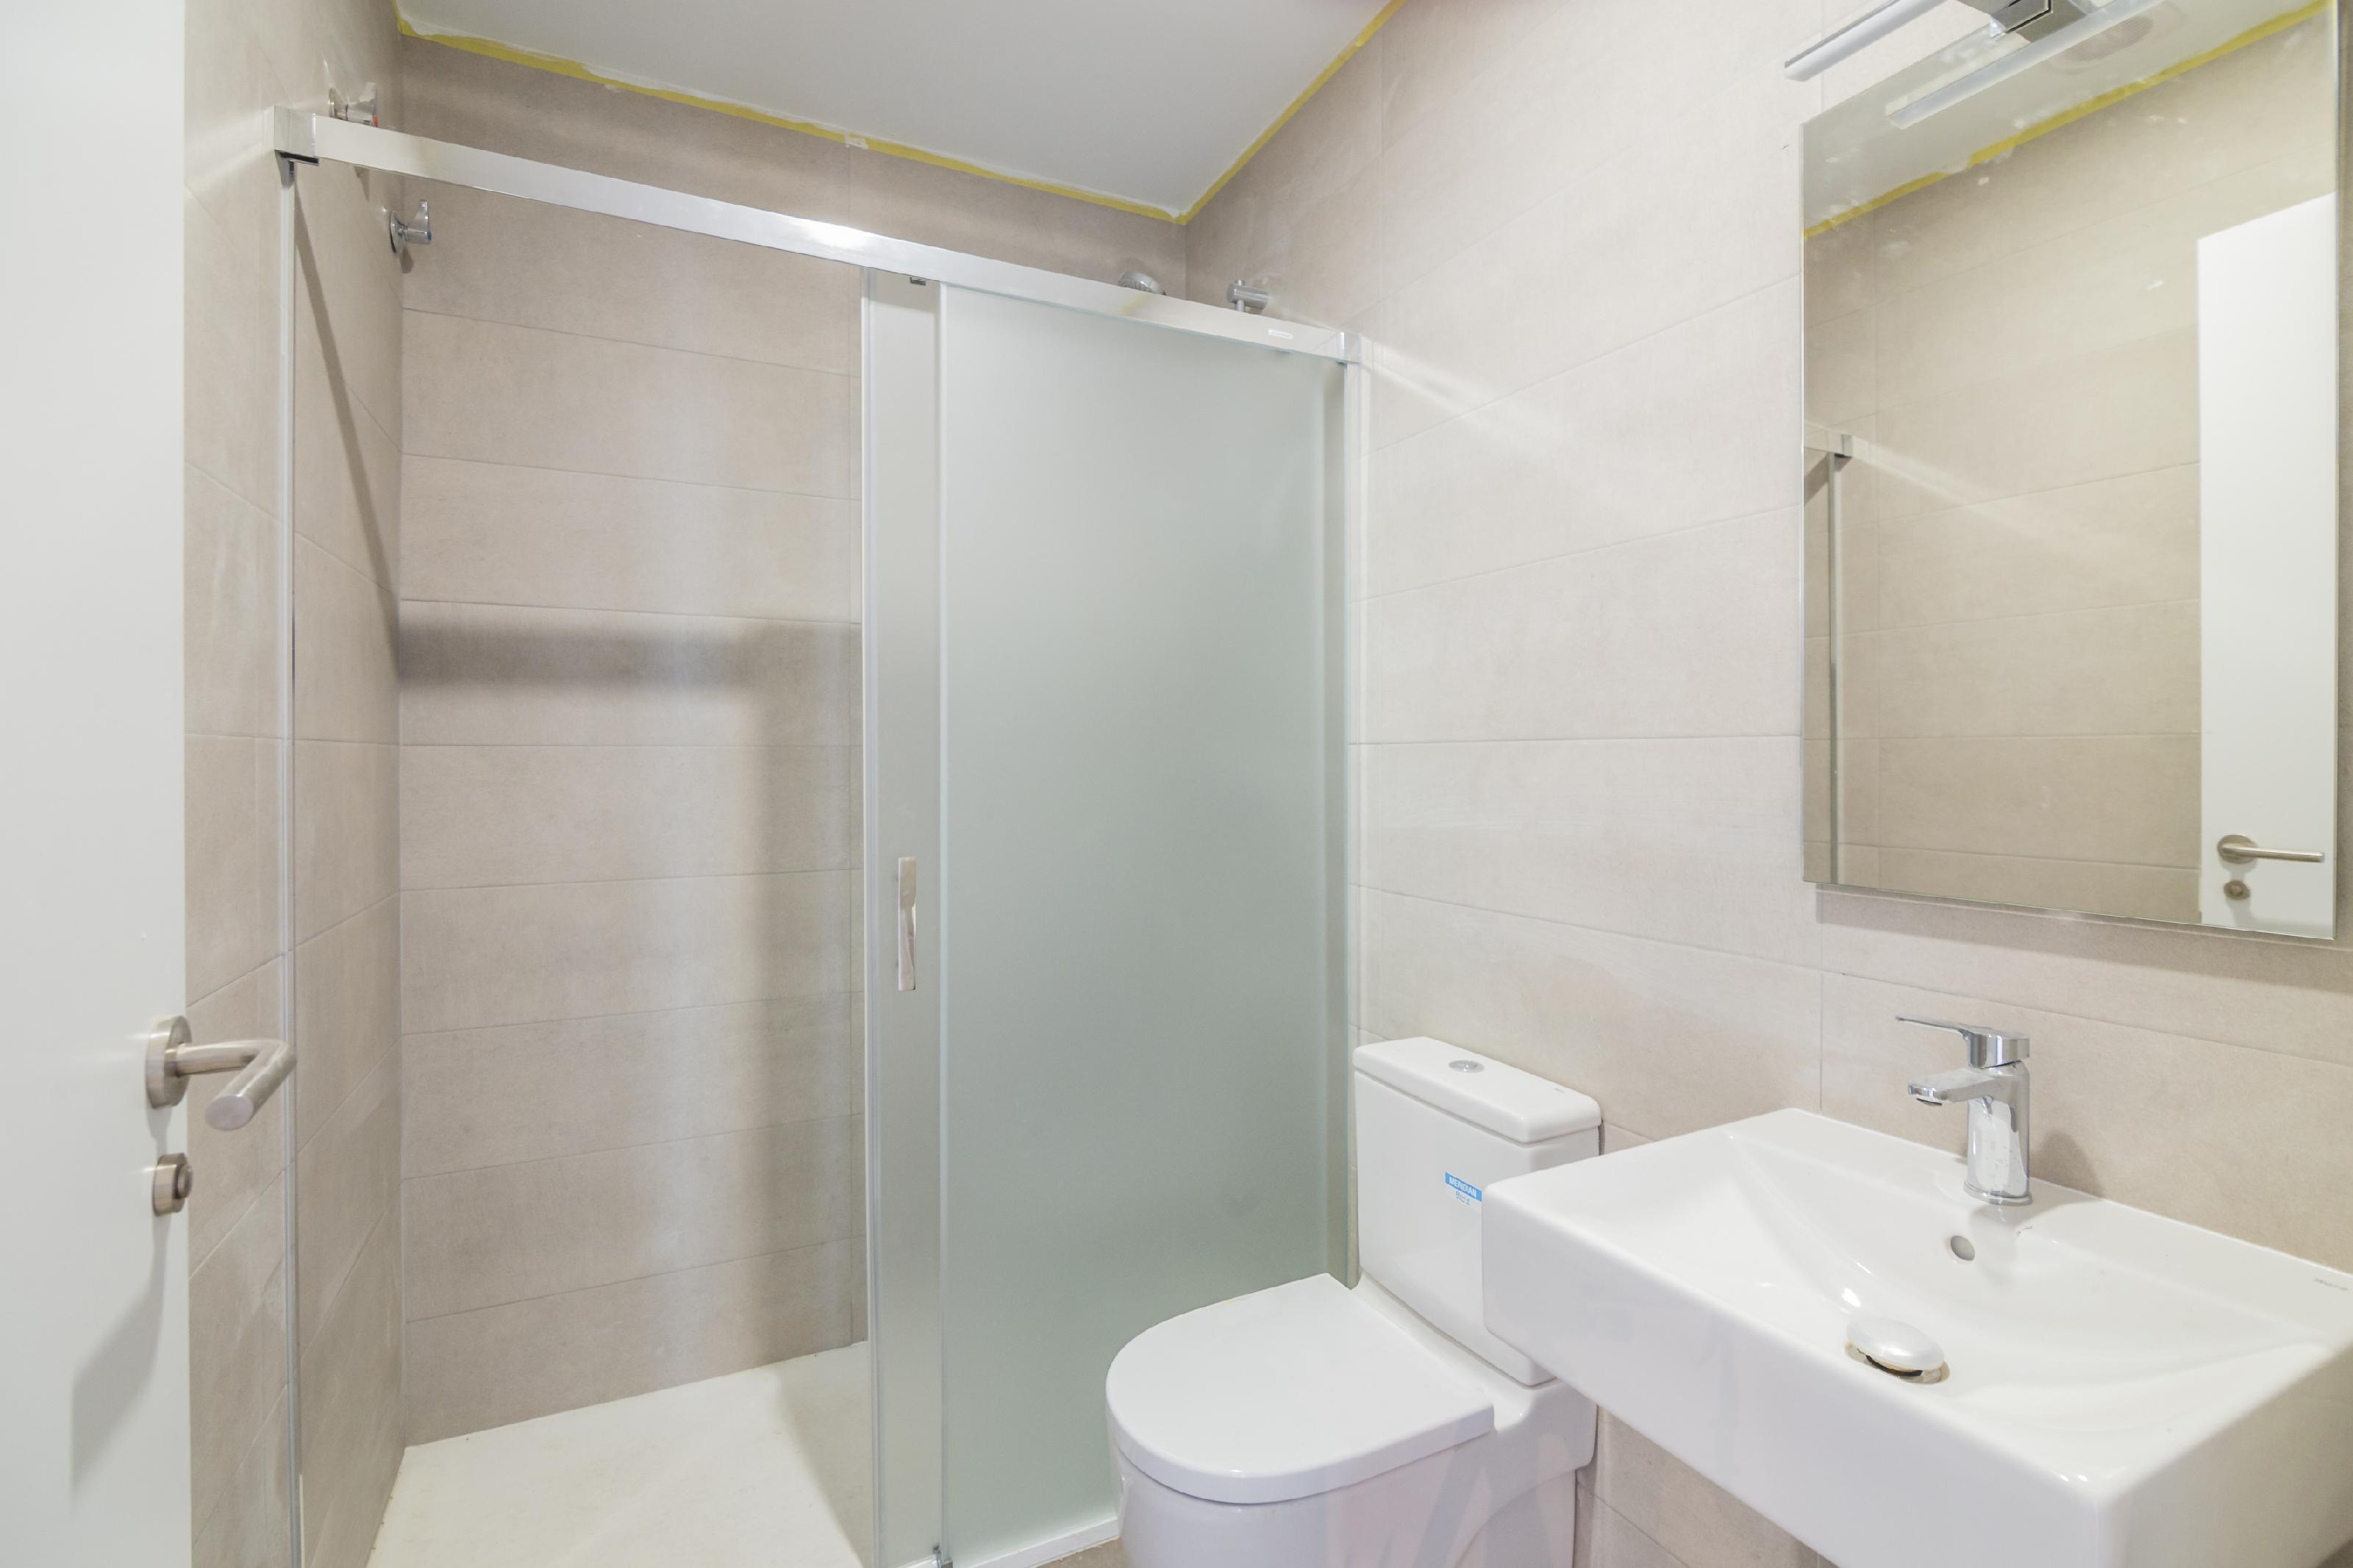 220650 Ground floor for sale in Sarrià-Sant Gervasi, Sant Gervasi-Galvany 6